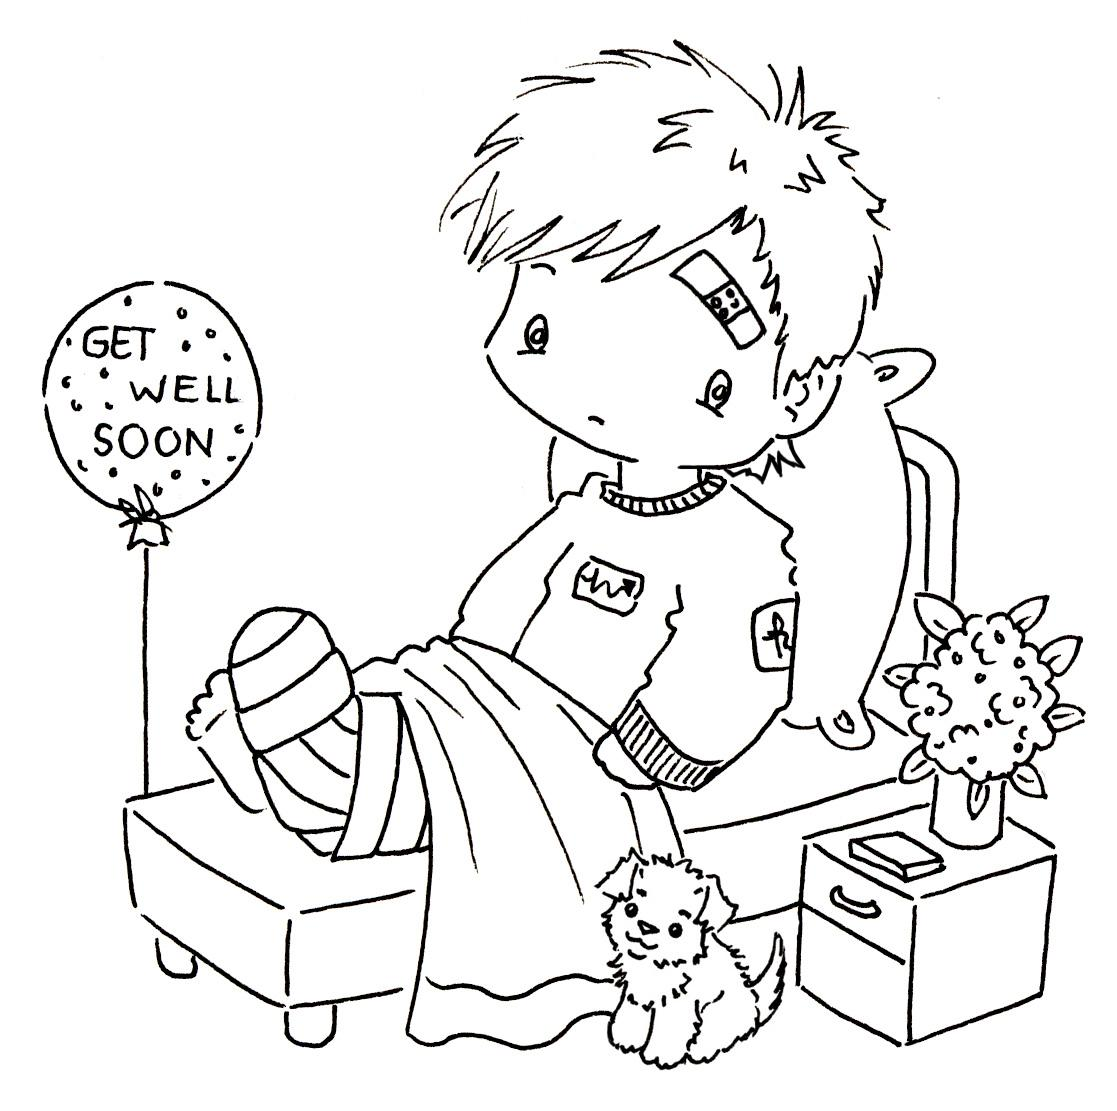 Printable Pictures Get Well Coloring Pages 28 In Seasonal